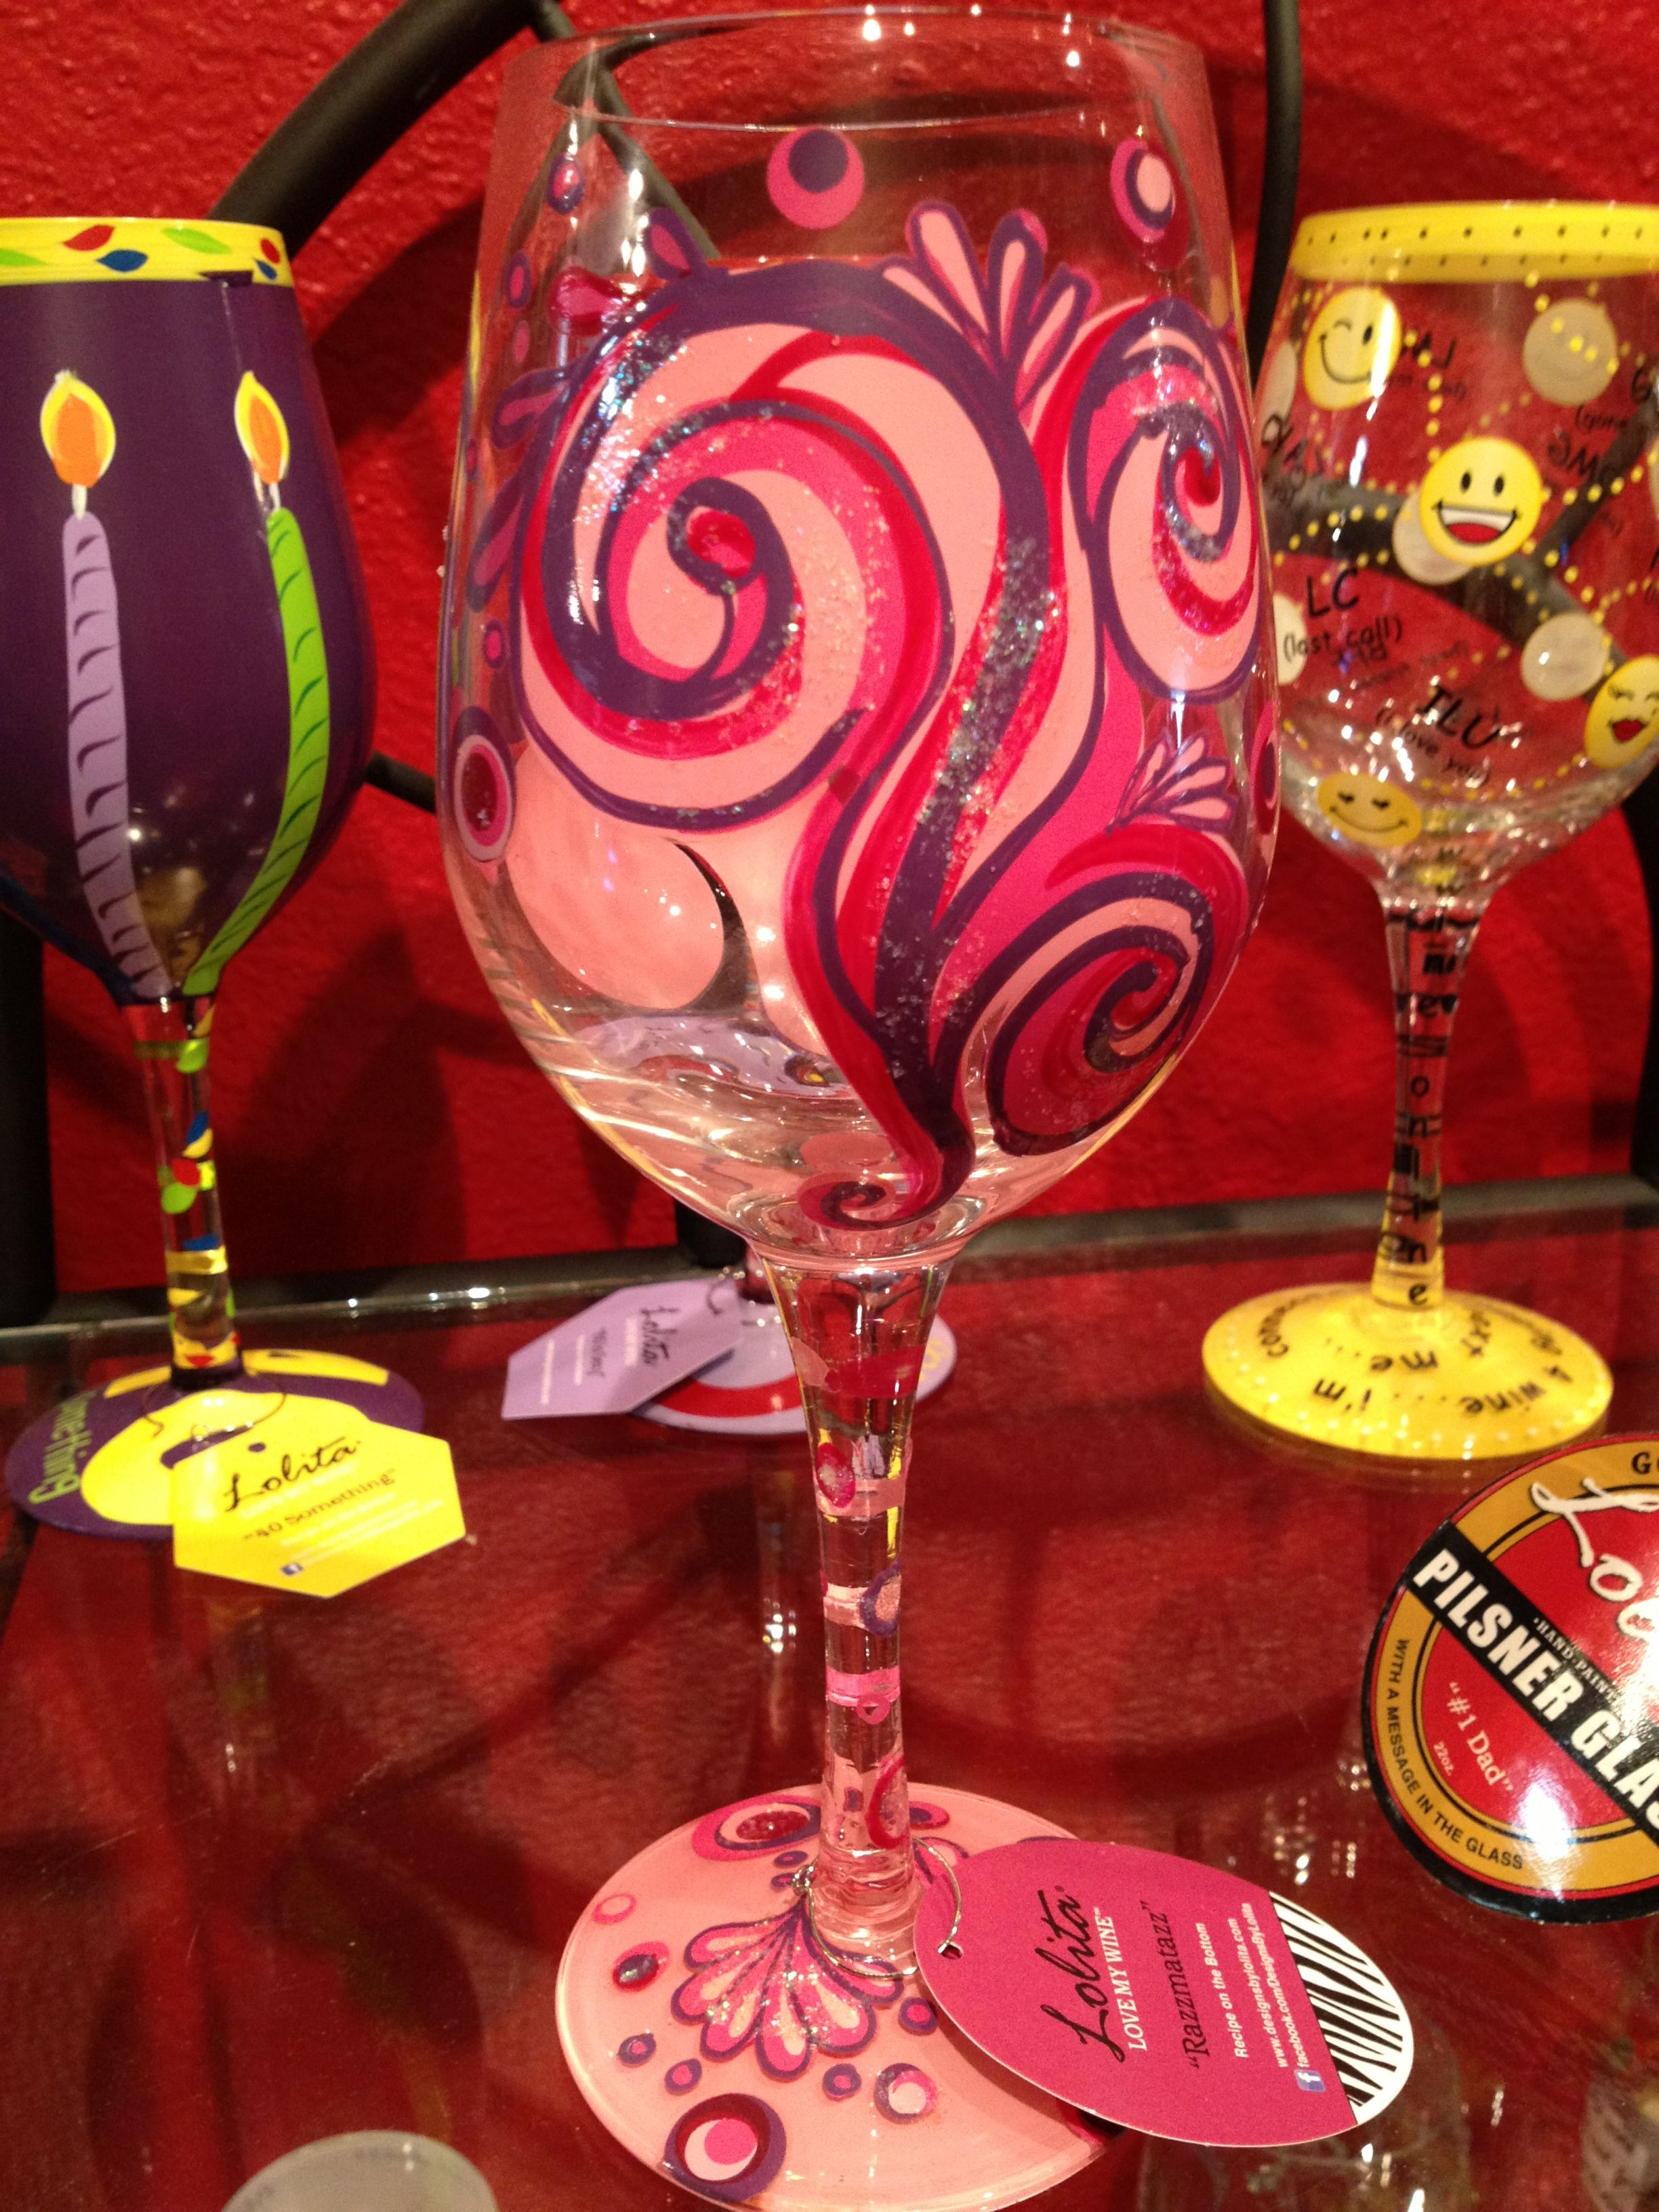 Pin By Osvalt Orsolya On Learn How To Interests Hand Painted Wine Glasses Hand Painted Wine Glass Painted Wine Glass